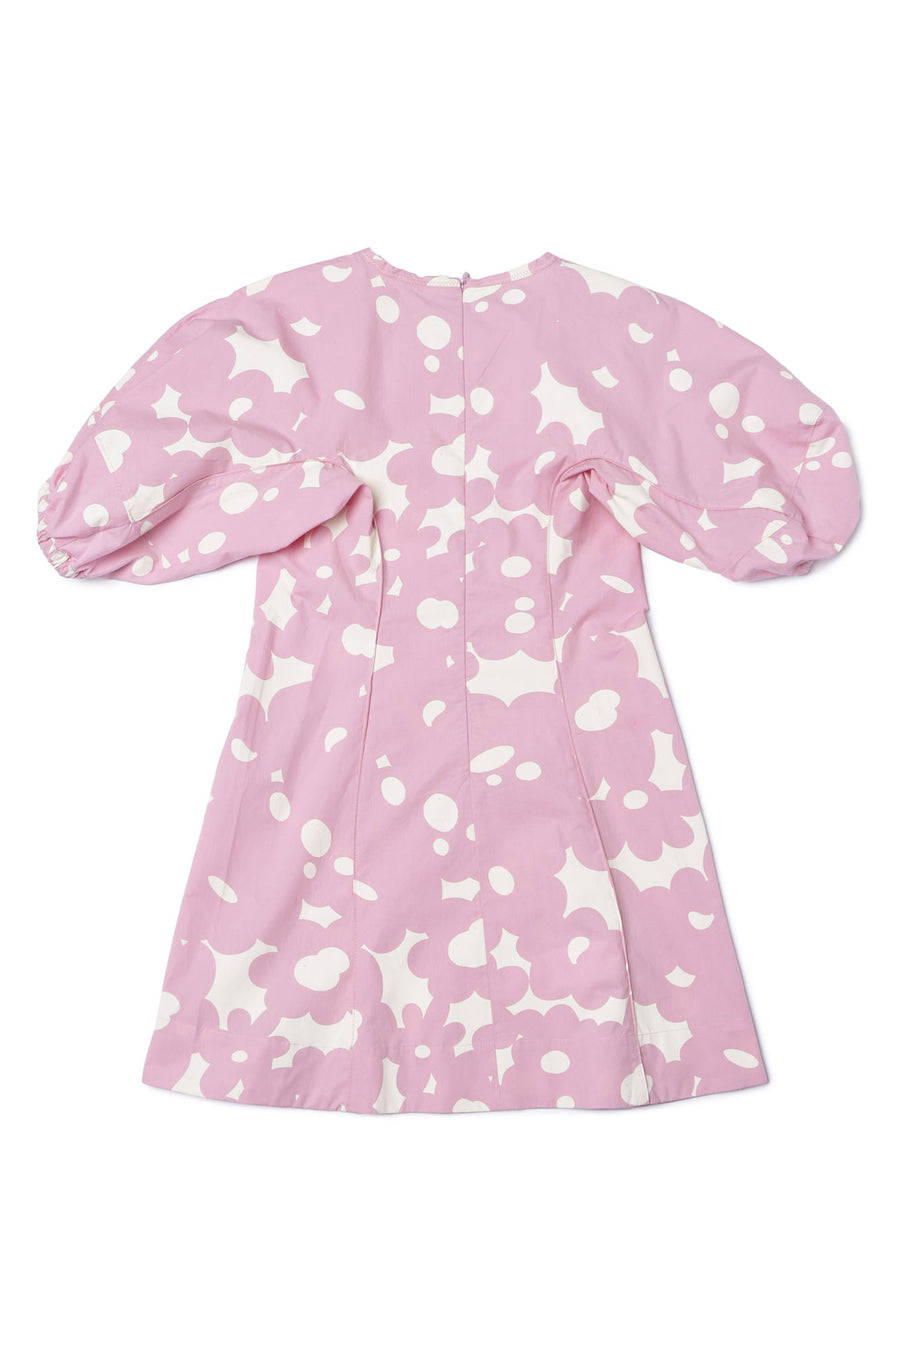 Floral Pink Puff Sleeve Dress by Marni